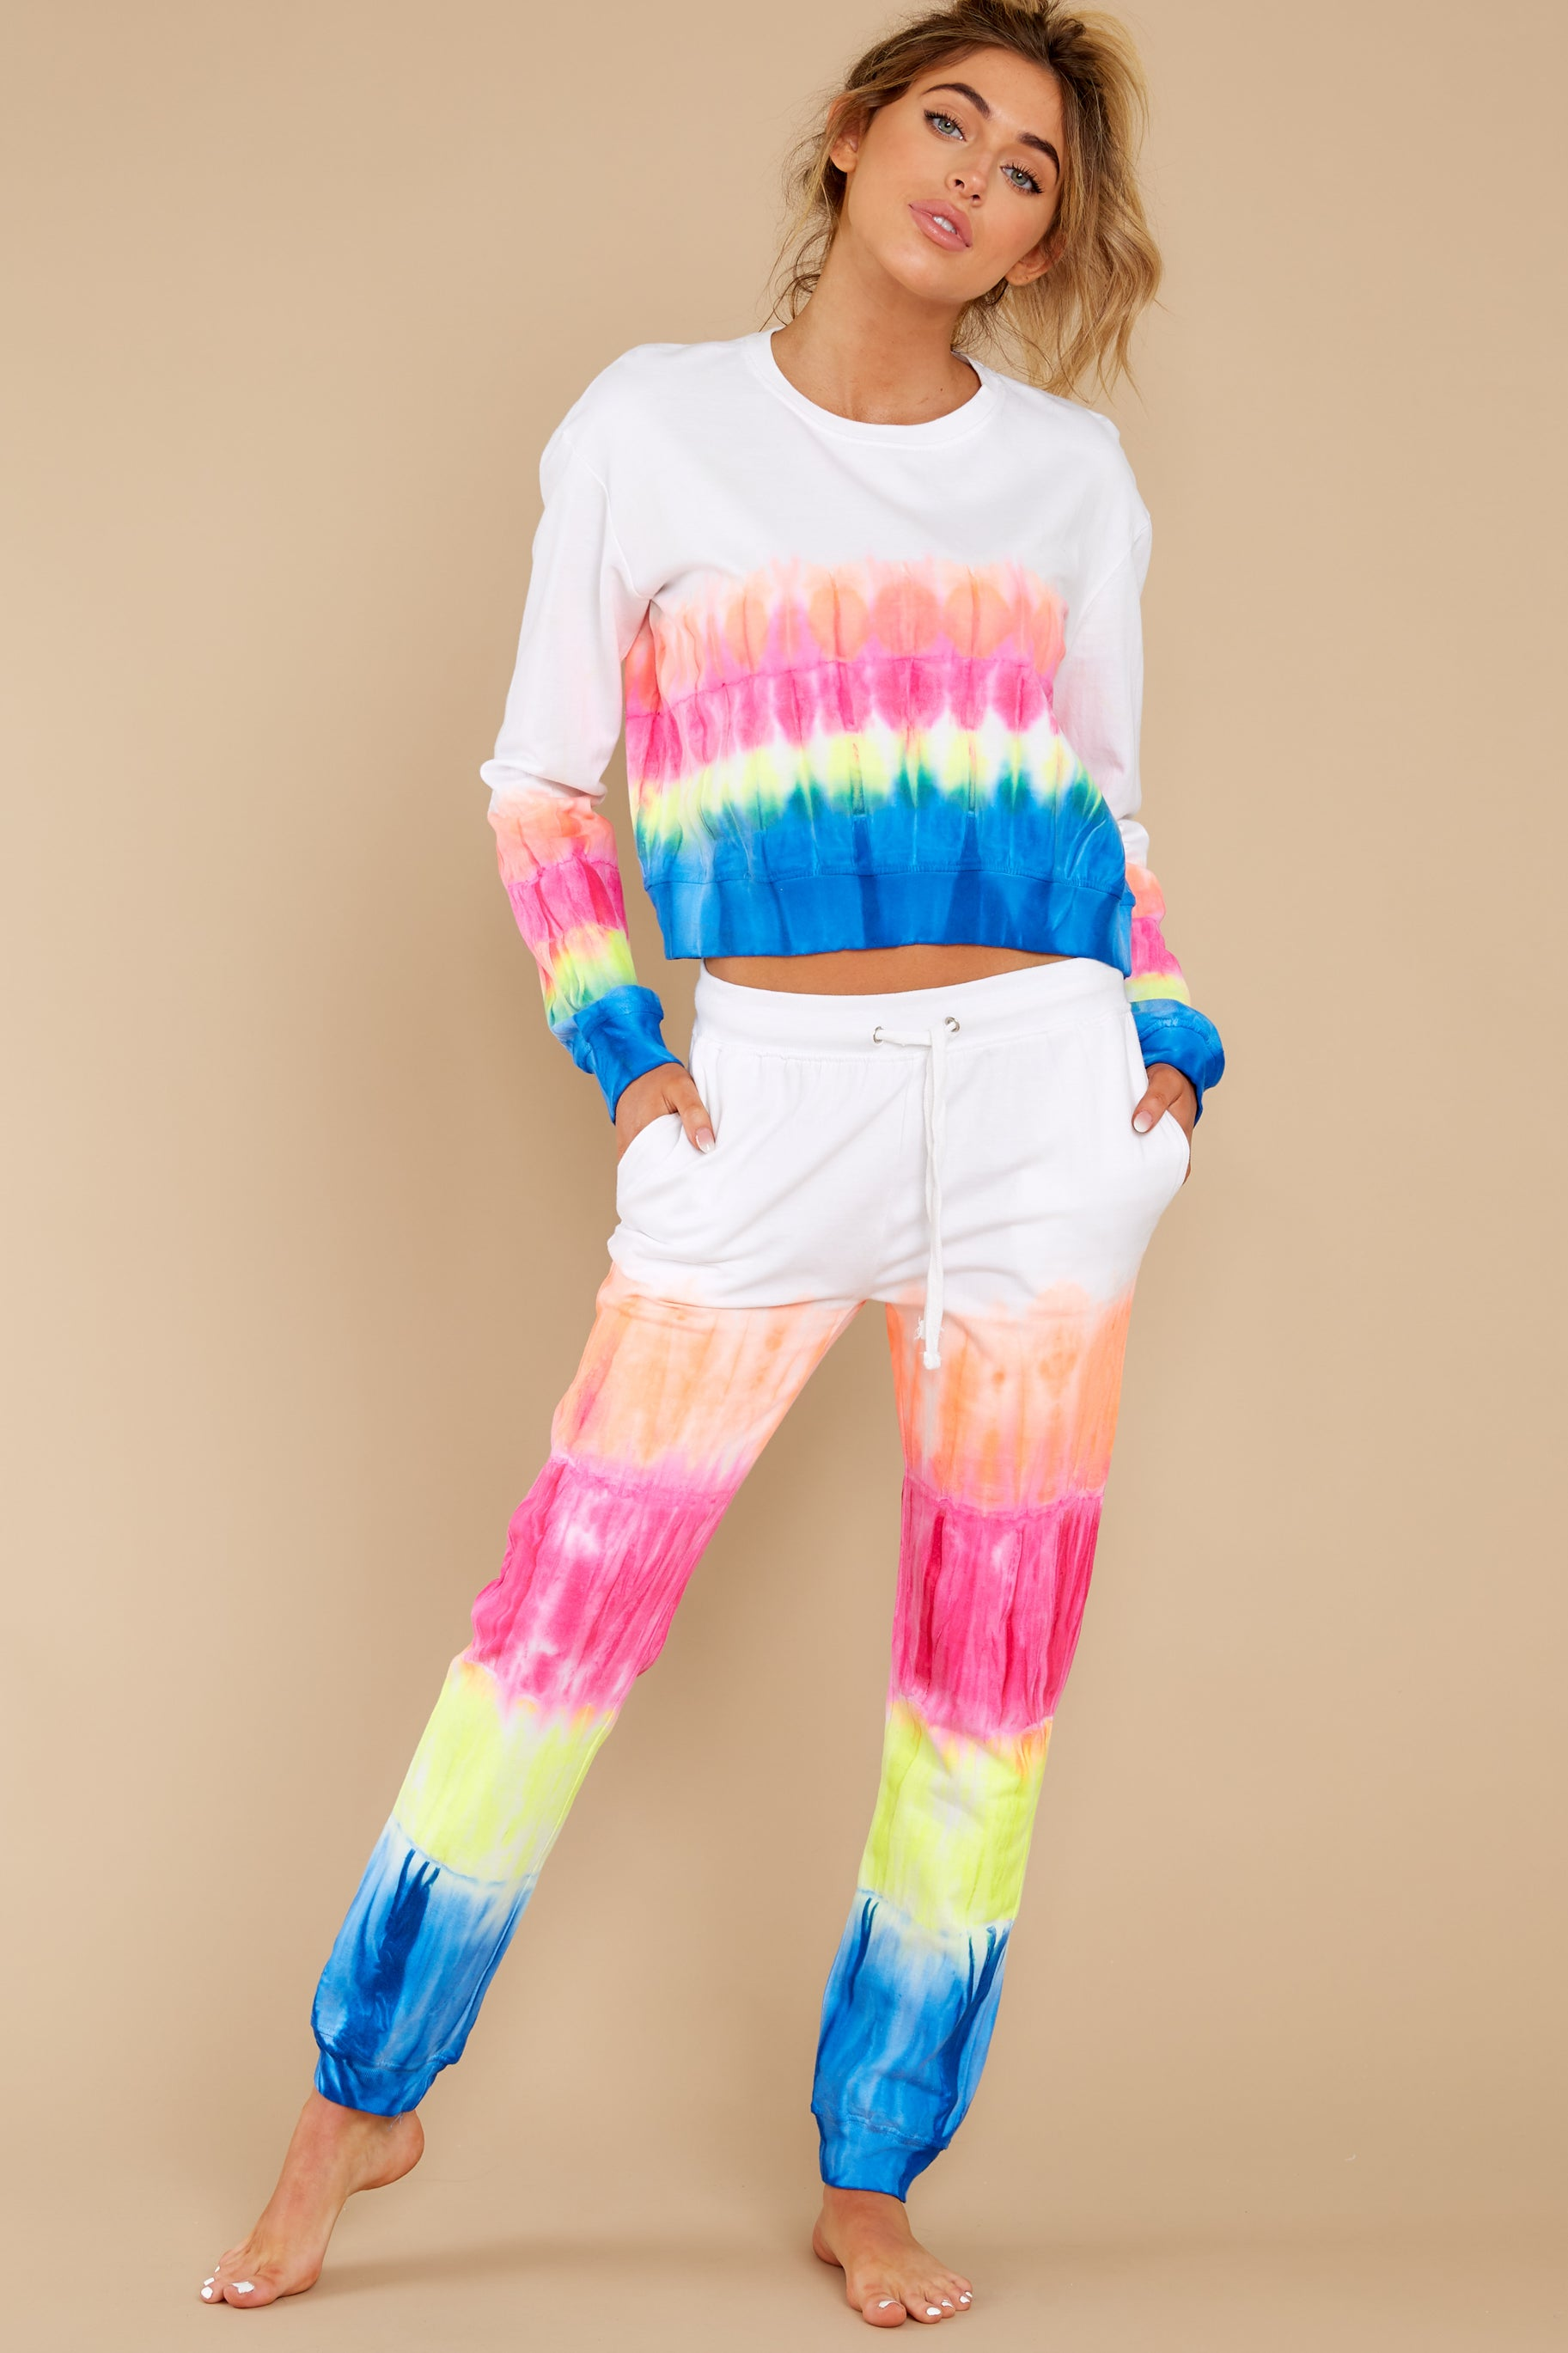 4 Relax Zone Neon Mirage Tie Dye Joggers at reddress.com